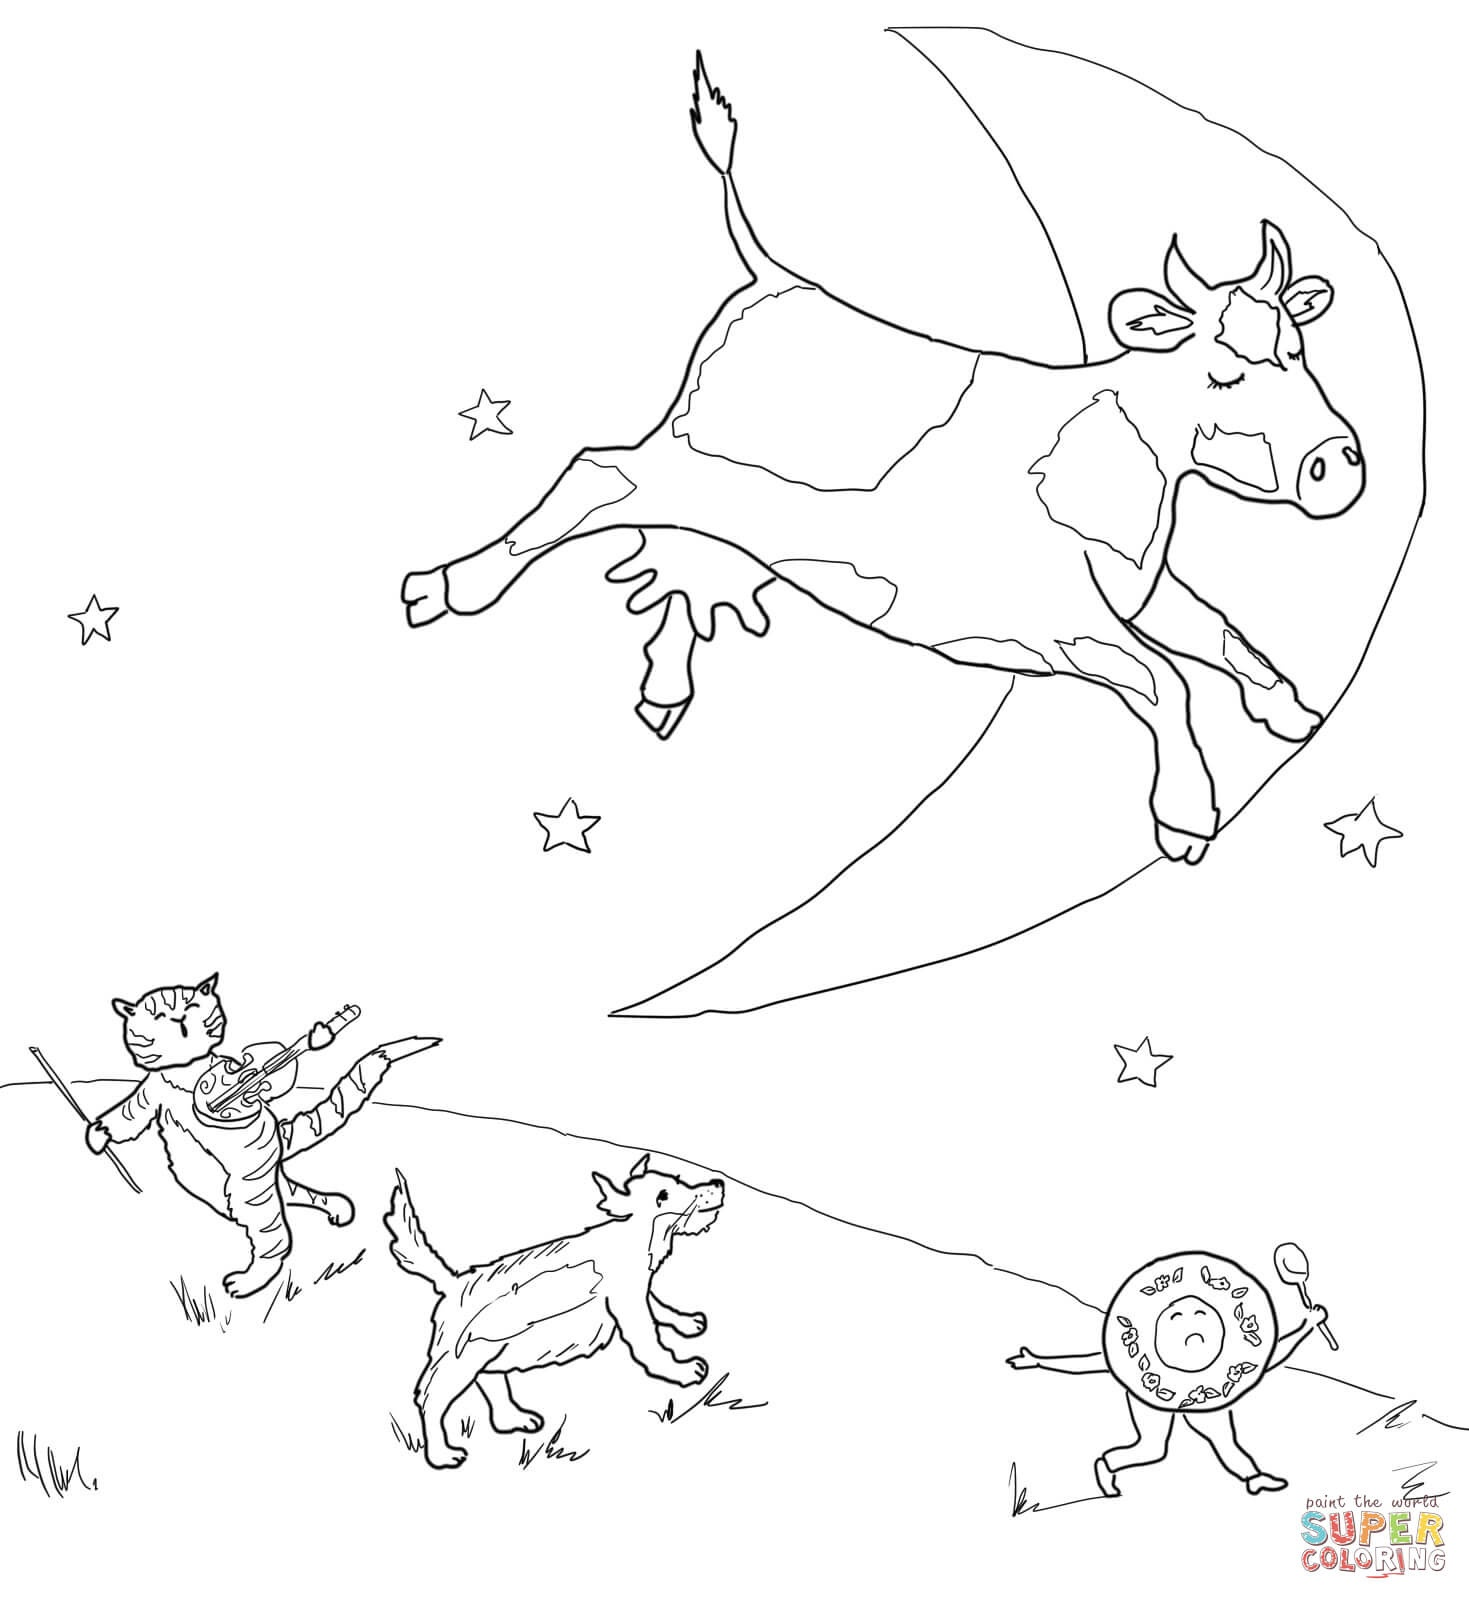 Mother Goose Nursery Rhymes Coloring Pages | Free Coloring Pages - Free Printable Nursery Rhyme Coloring Pages